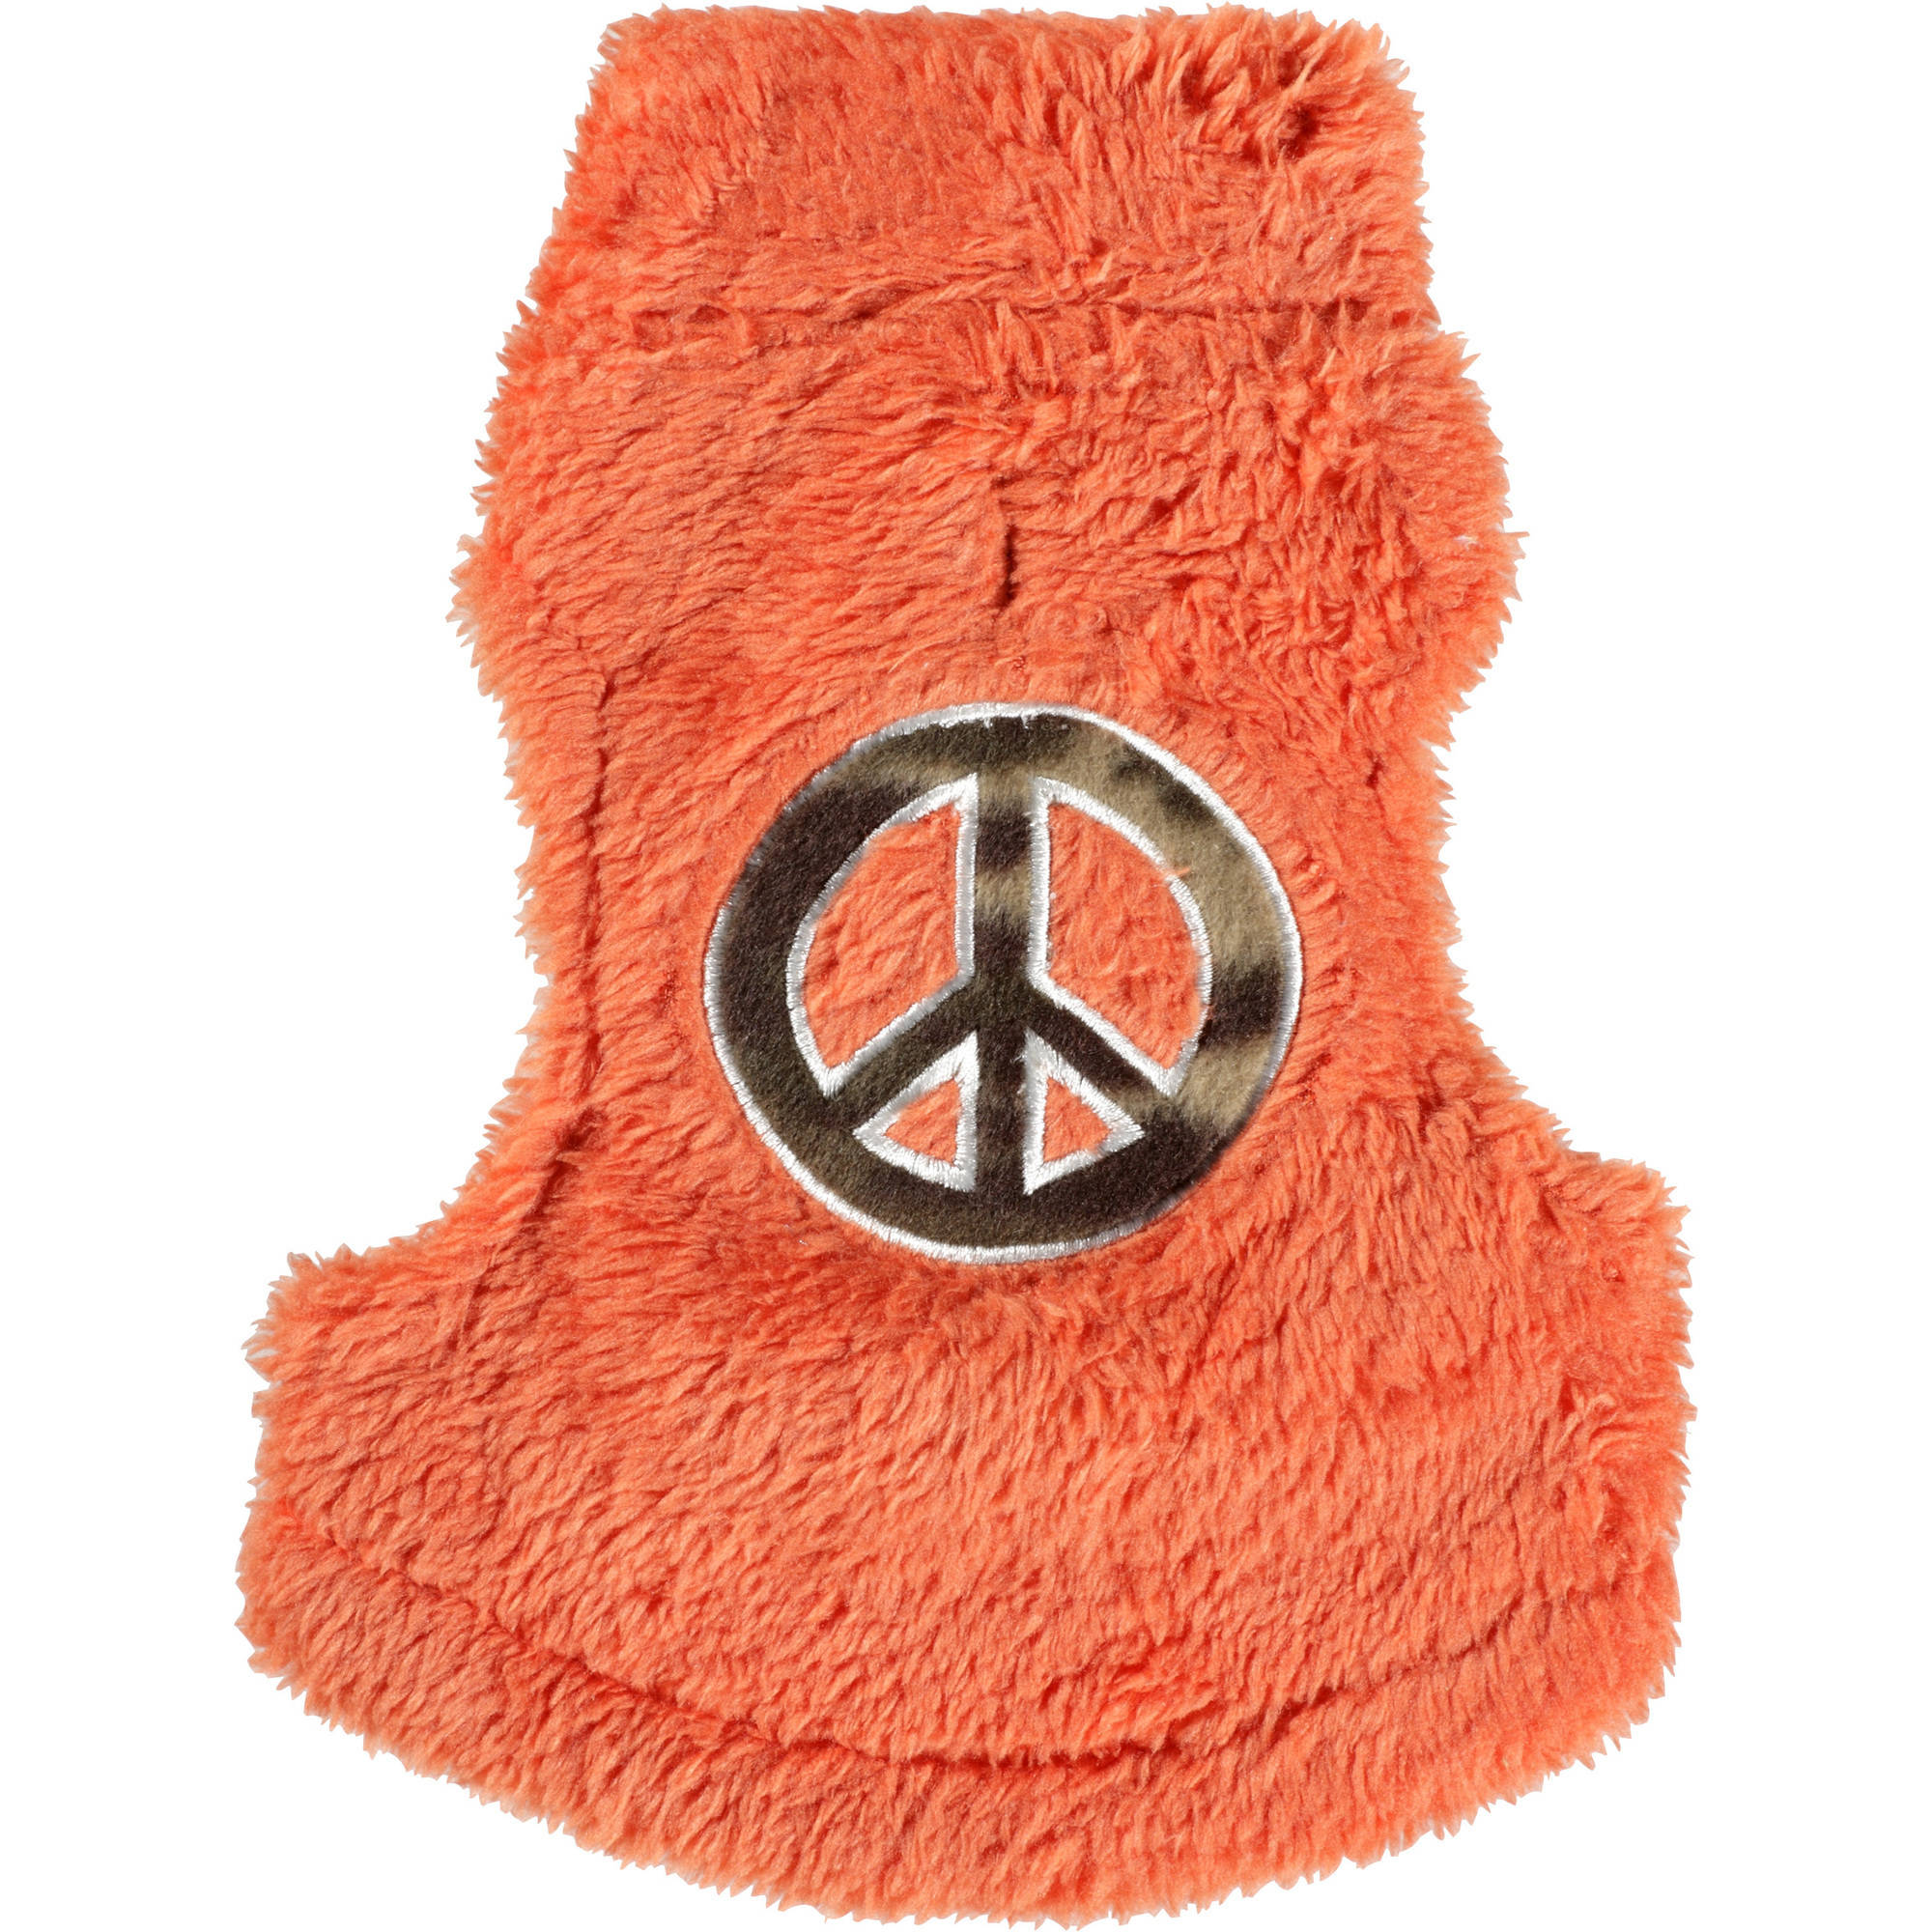 Cayre Group Mock Neck Fuzzy Fleece Dog Sweater with Peace Sign Applique, Solid Orange, Multiple Sizes Available